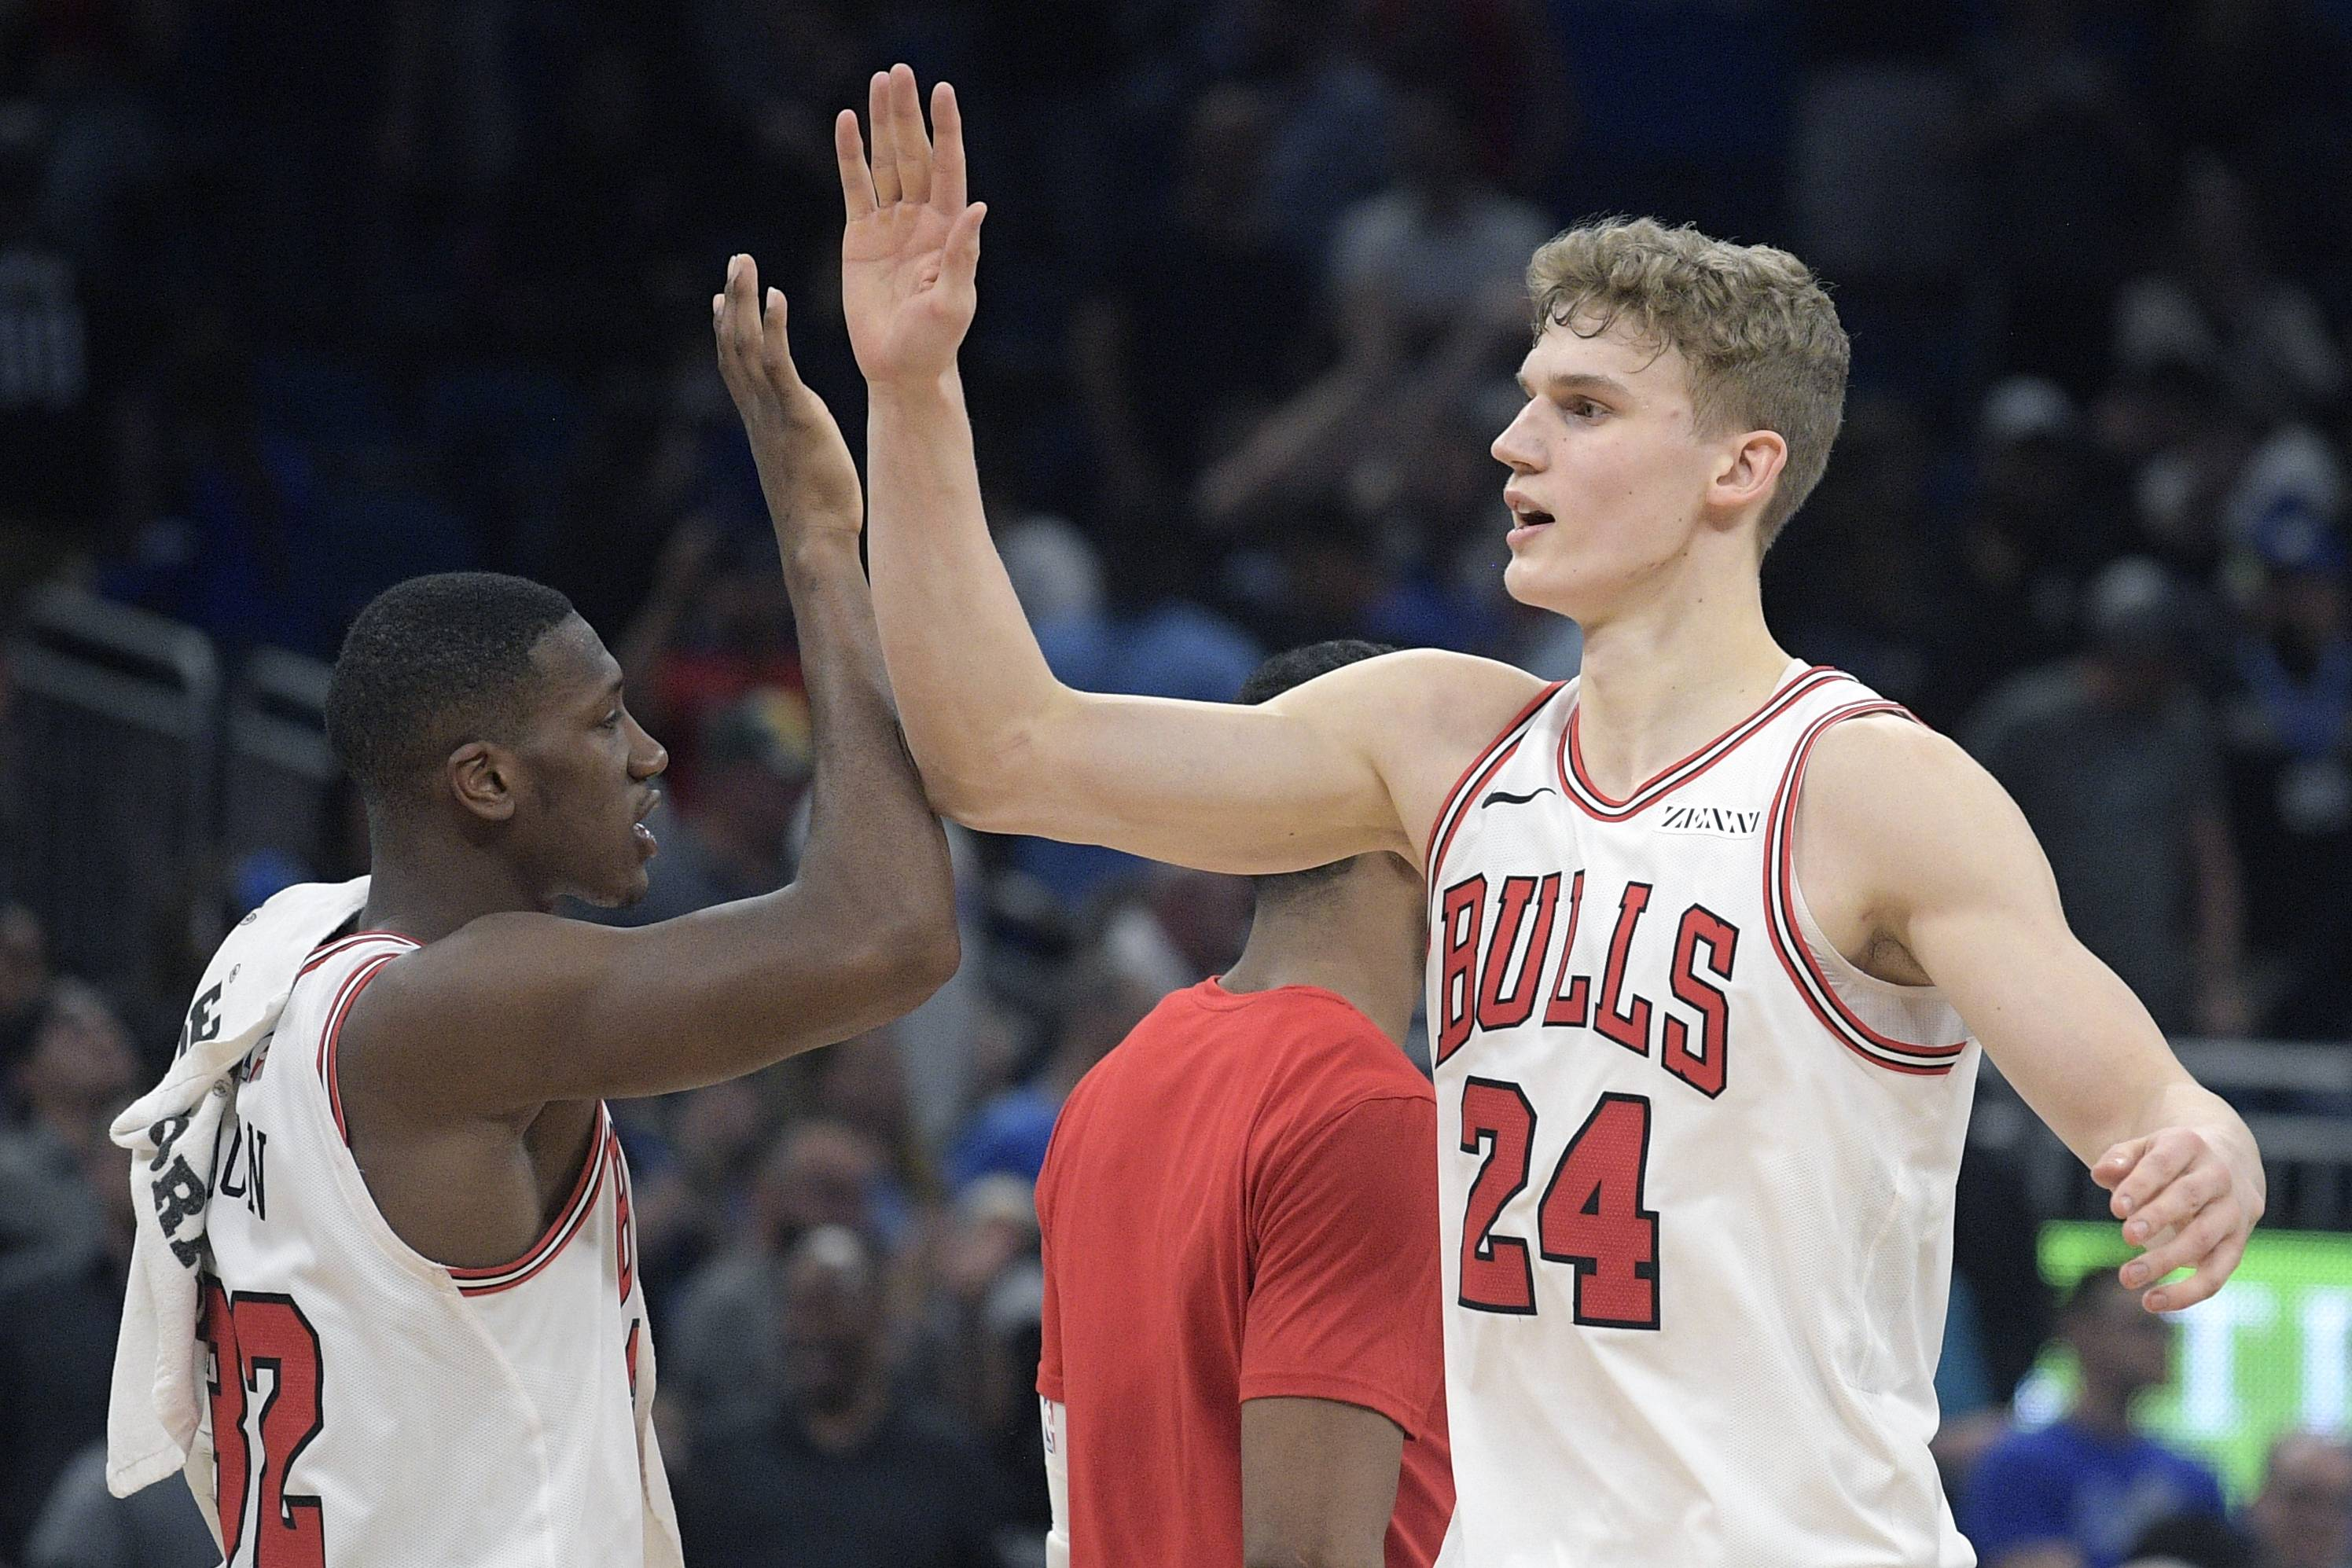 Chicago Bulls forward Lauri Markkanen (24) is congratulated by guard Kris Dunn (32) after a win over the Orlando Magic in an NBA basketball game Friday, Feb. 22, 2019, in Orlando, Fla. (AP Photo/Phelan M. Ebenhack)